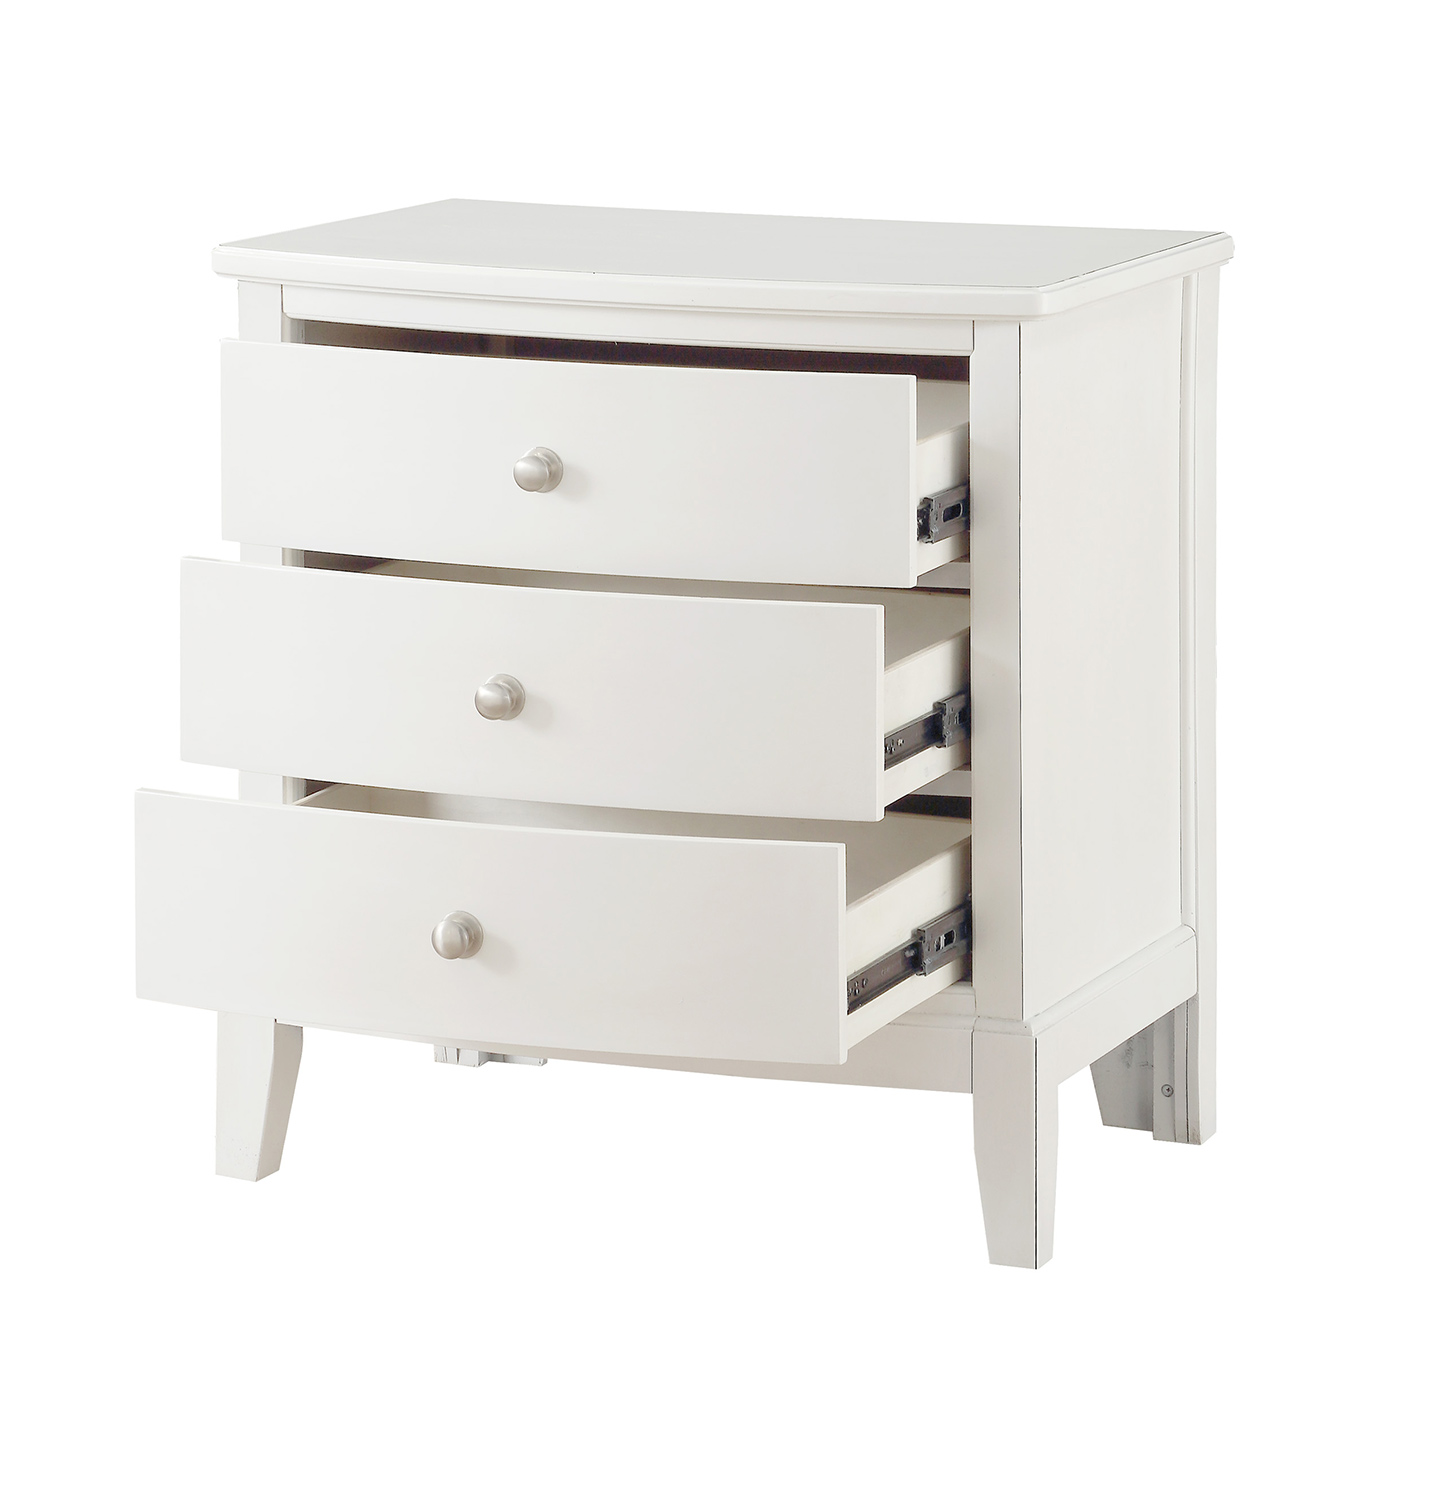 Homelegance Cotterill Night Stand - White Finish over Birch Veneer